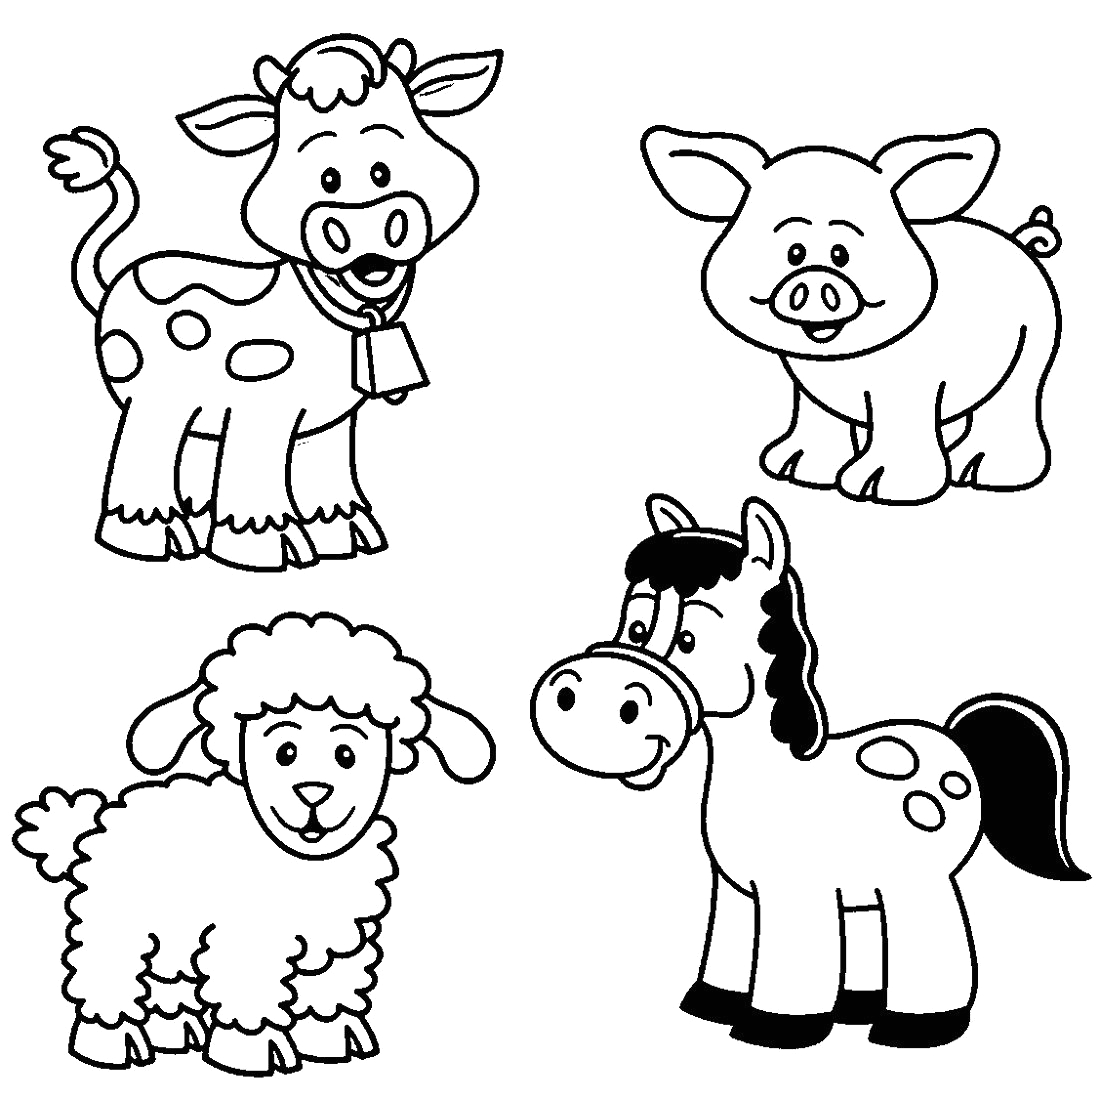 Free Printable Animal Coloring Pages for Kindergarten Printable Farm Animal Coloring for Kindergarten